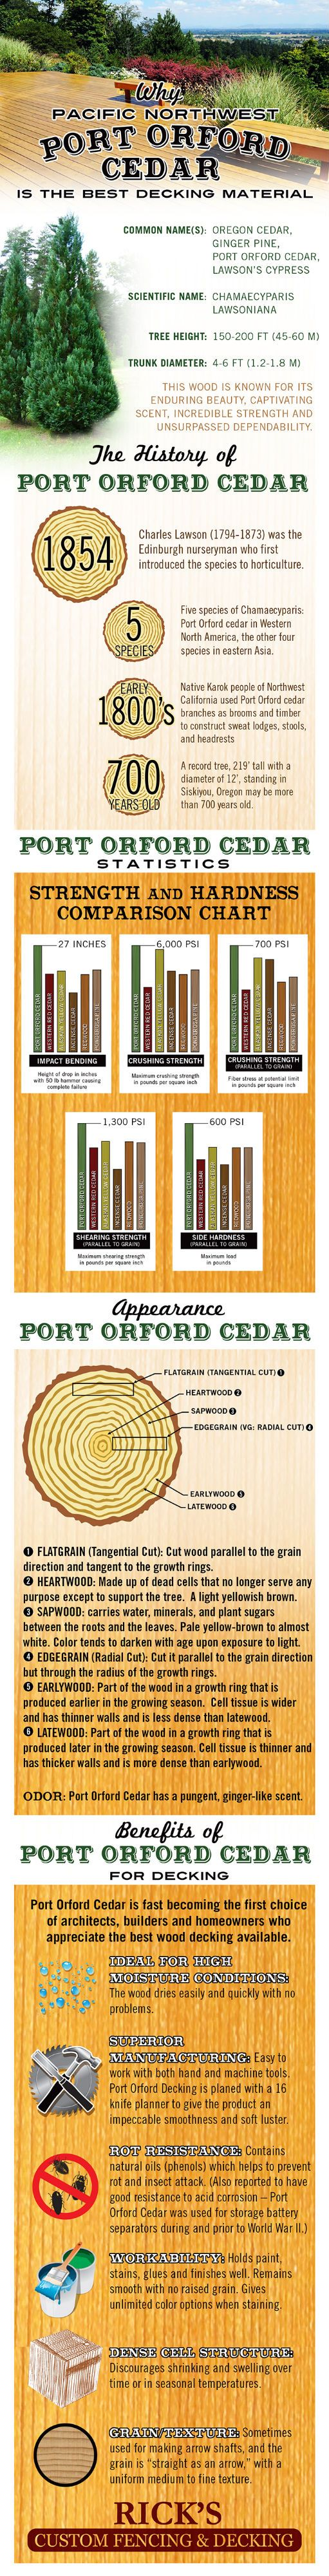 Why Pacific Northwest Port Orford Cedar Is The Best Decking Material